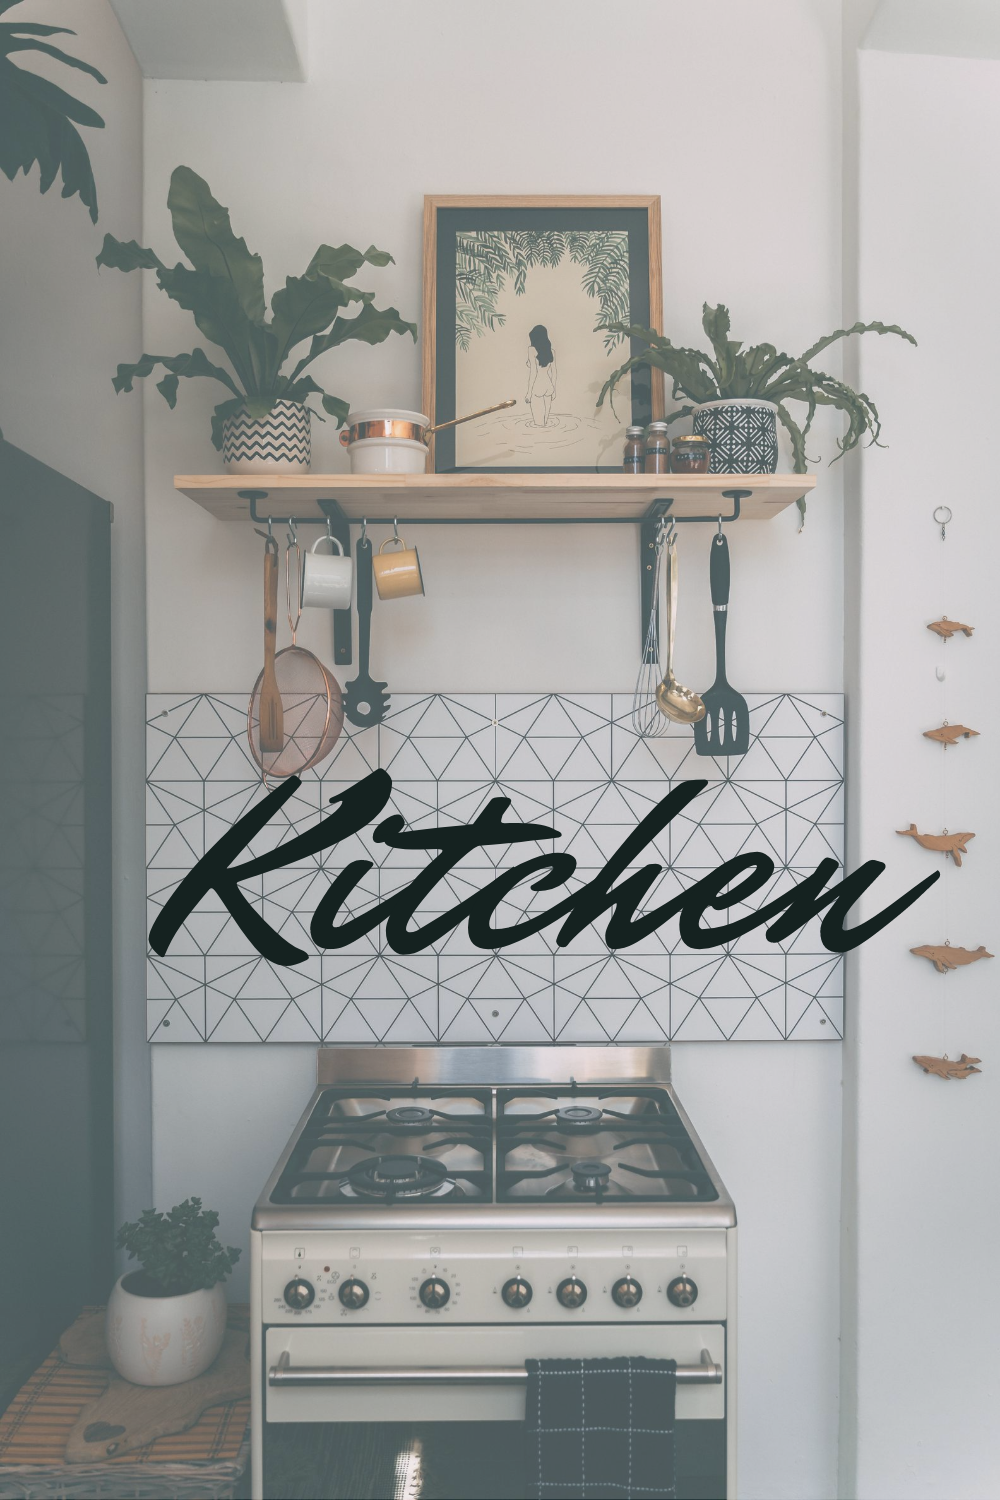 The kitchen is the soul of a house where family spent most of the time. Abu Dhabi. Call us at +971 55724 0372 anytime for renovating your kitchen and making it fresh. #interior #decor #simple #simpleinterior #simpledecor #brightdecor #livingroom #kitchendesign